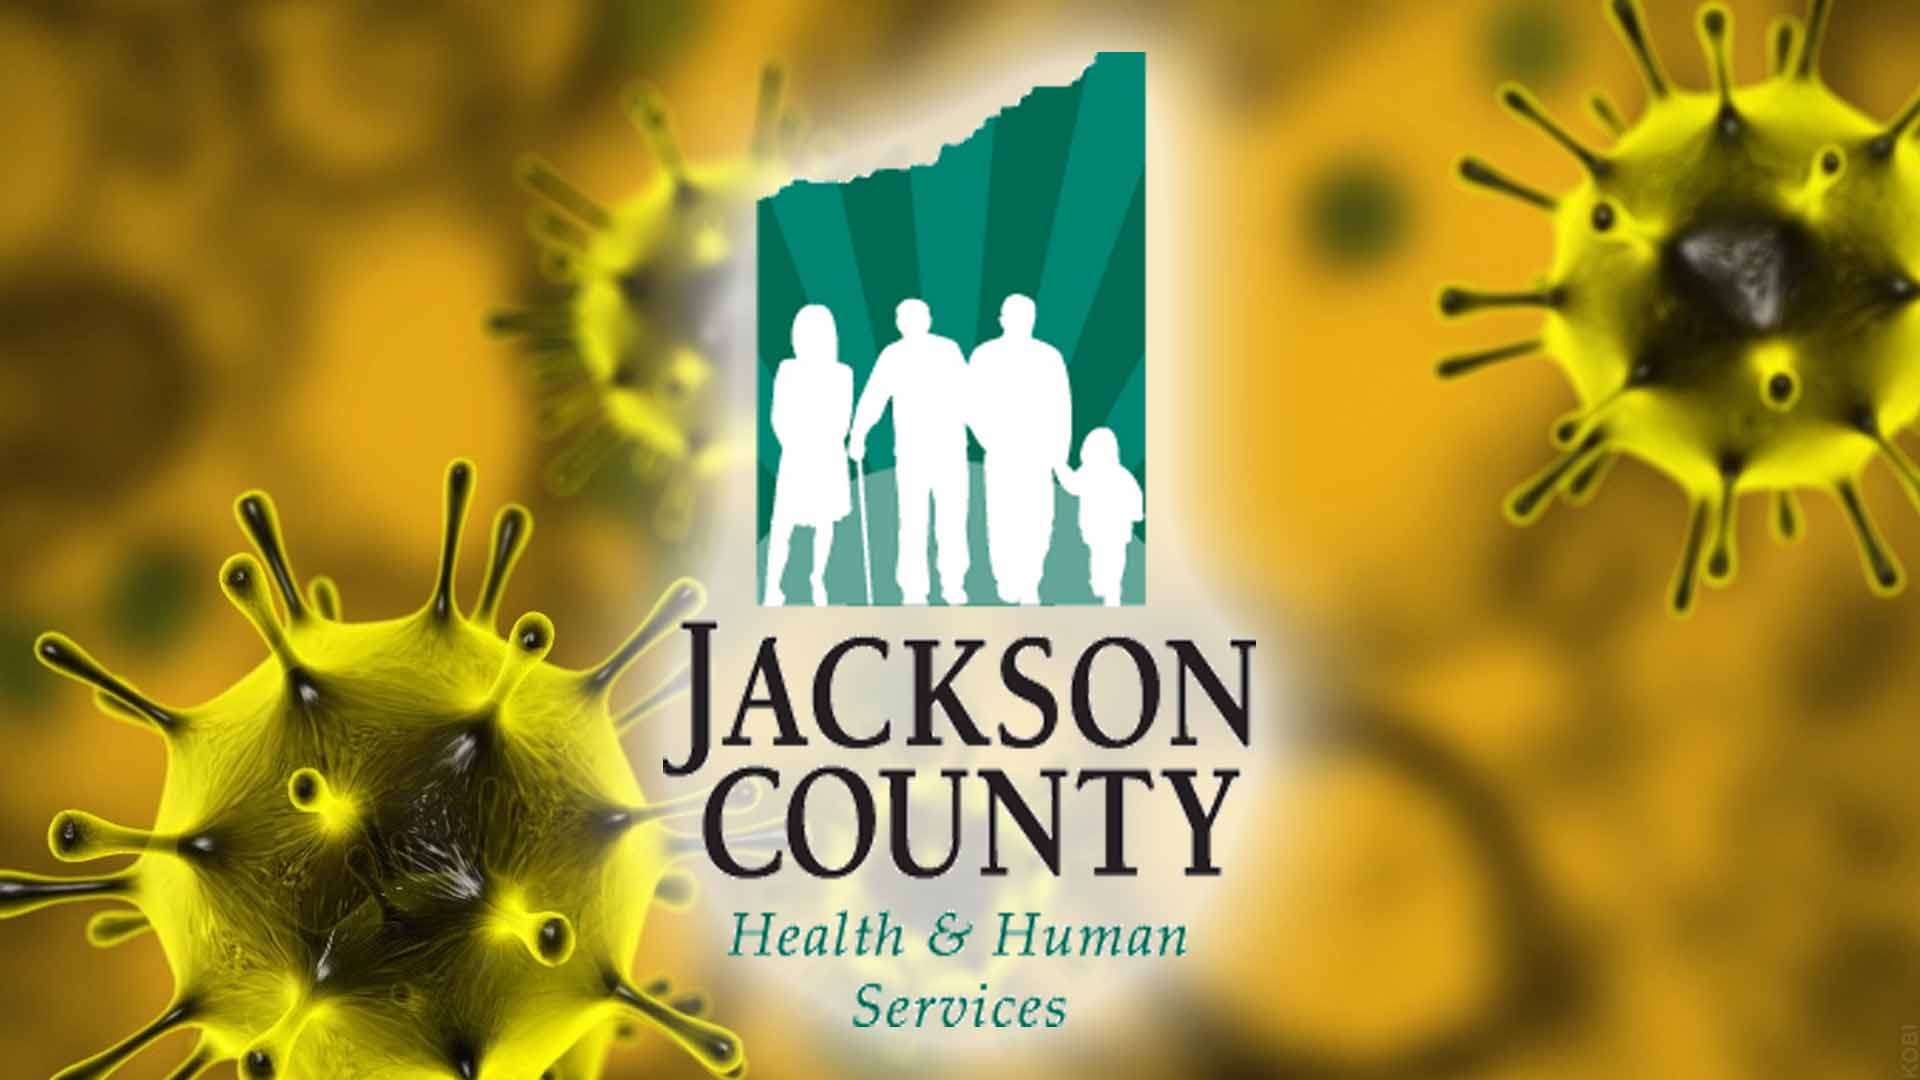 Jackson County sees 'shocking' increase in COVID-19 cases